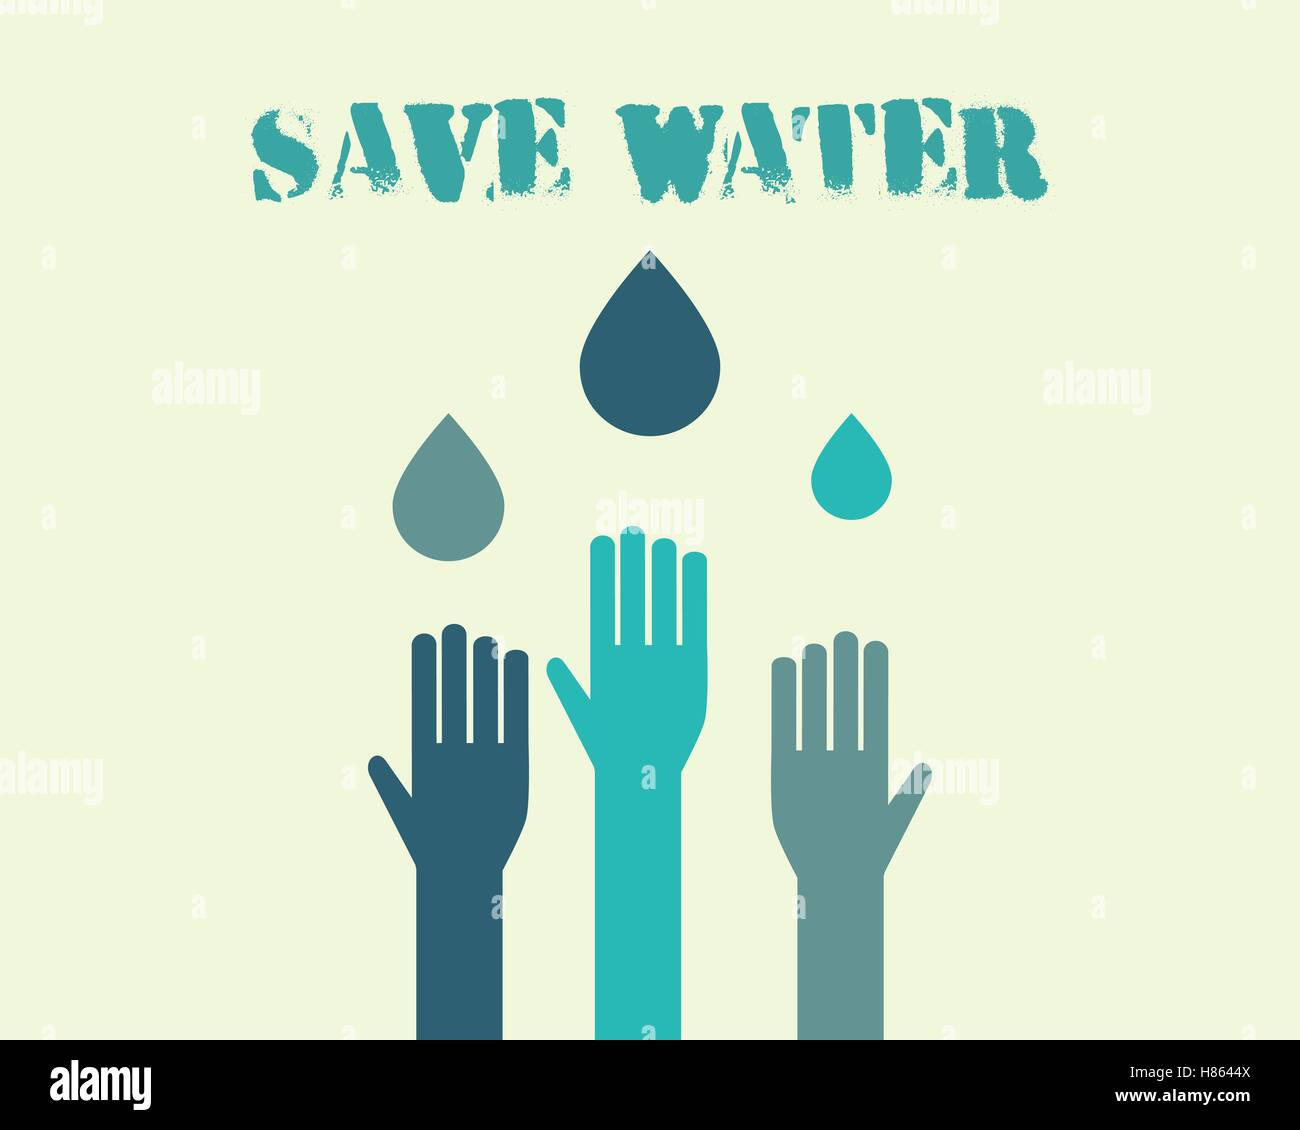 Poster design on save water - Save Water Poster Concept With Drops And Hands Ecology Water Crisis Background Vector Illustration